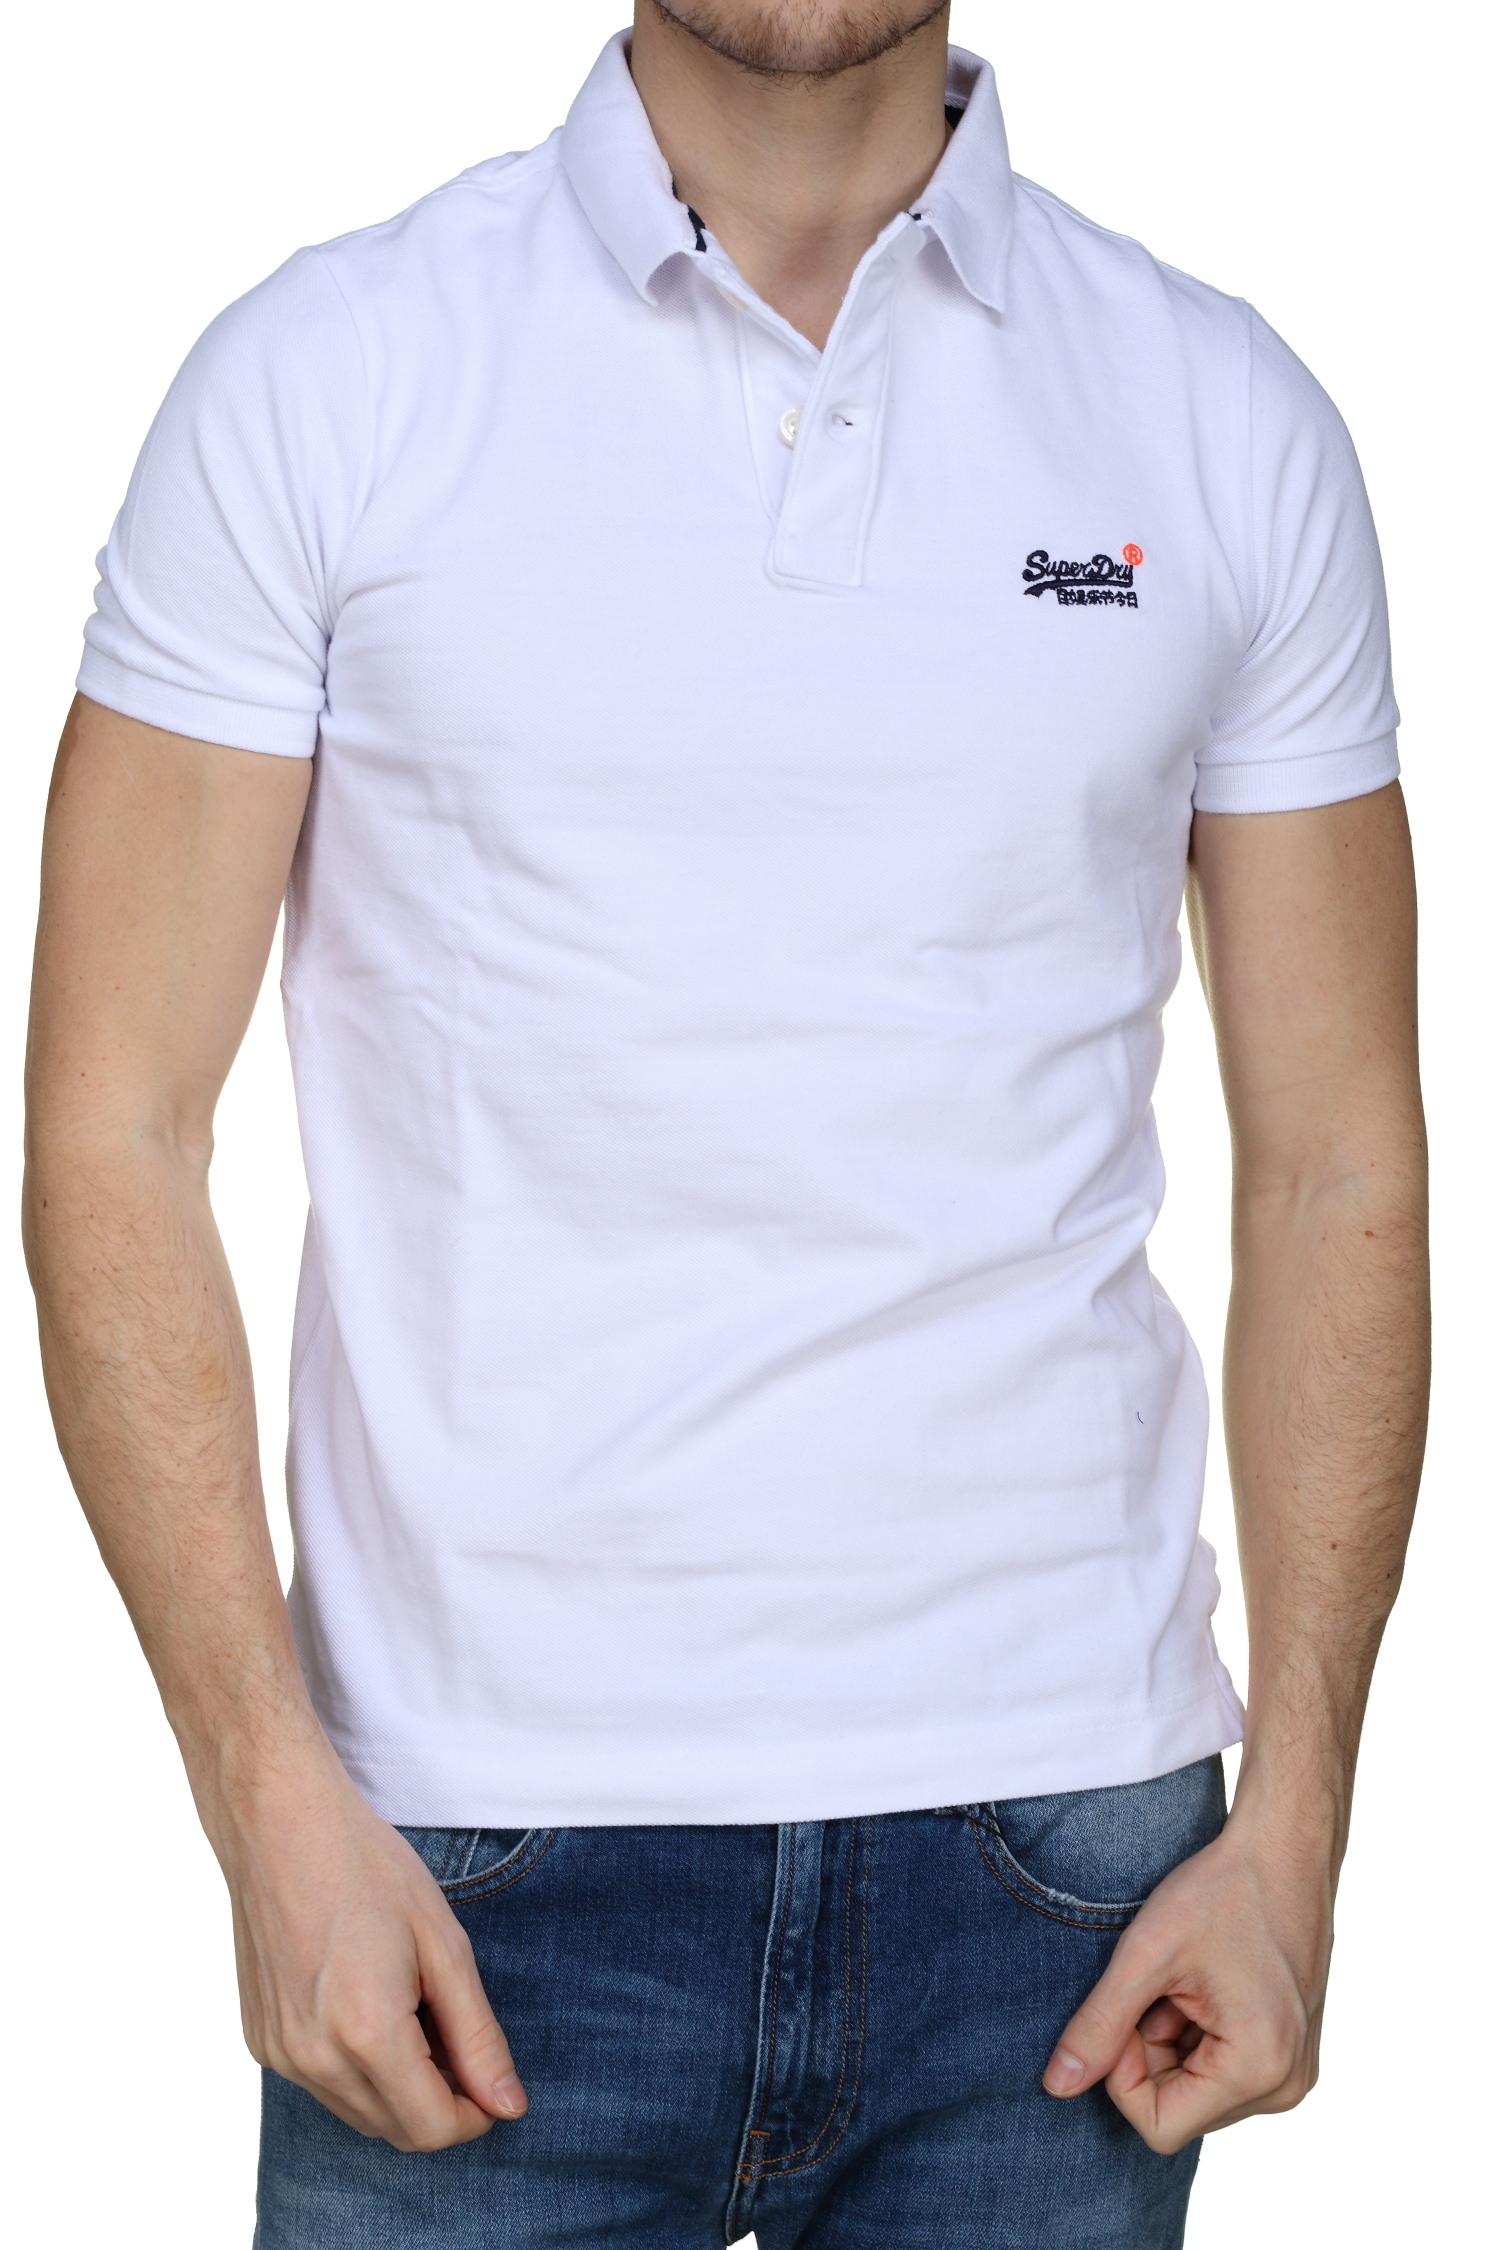 http://www.leadermode.com/164014/superdry-classic-s-s-pique-m11005n-26c-optic-white.jpg